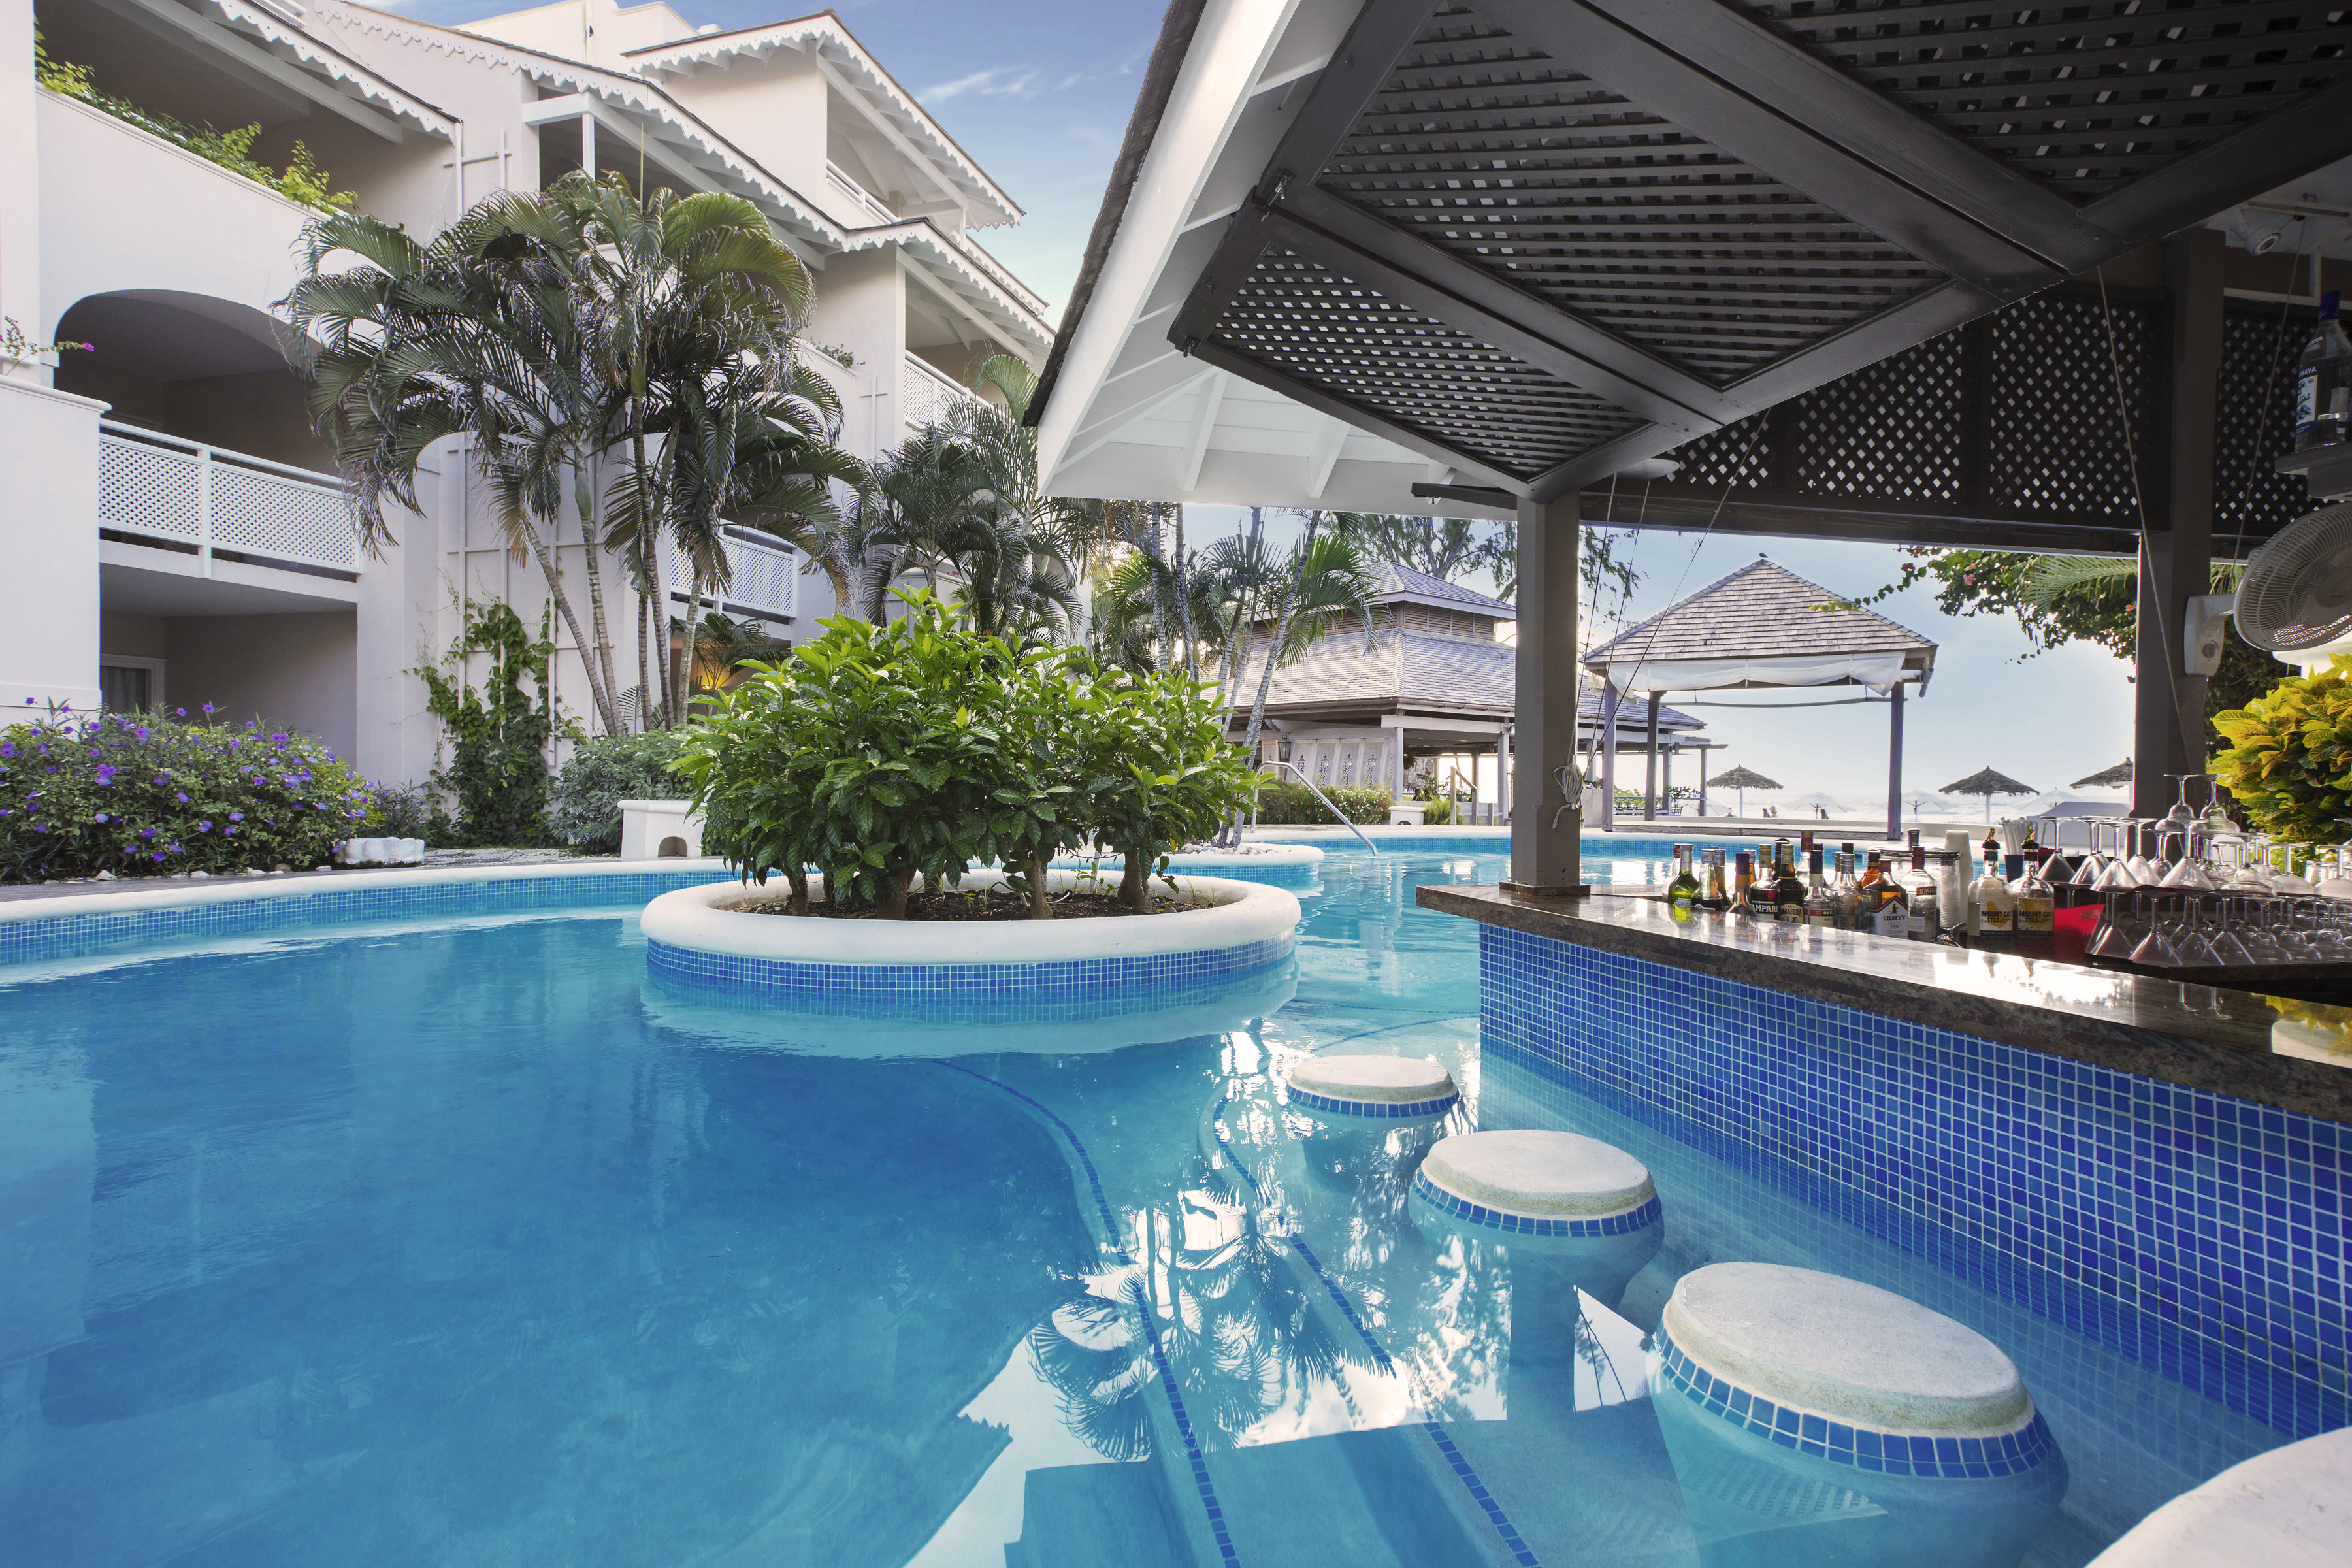 Travel Agency Website >> Pools and Exteriors - Escape Marketing